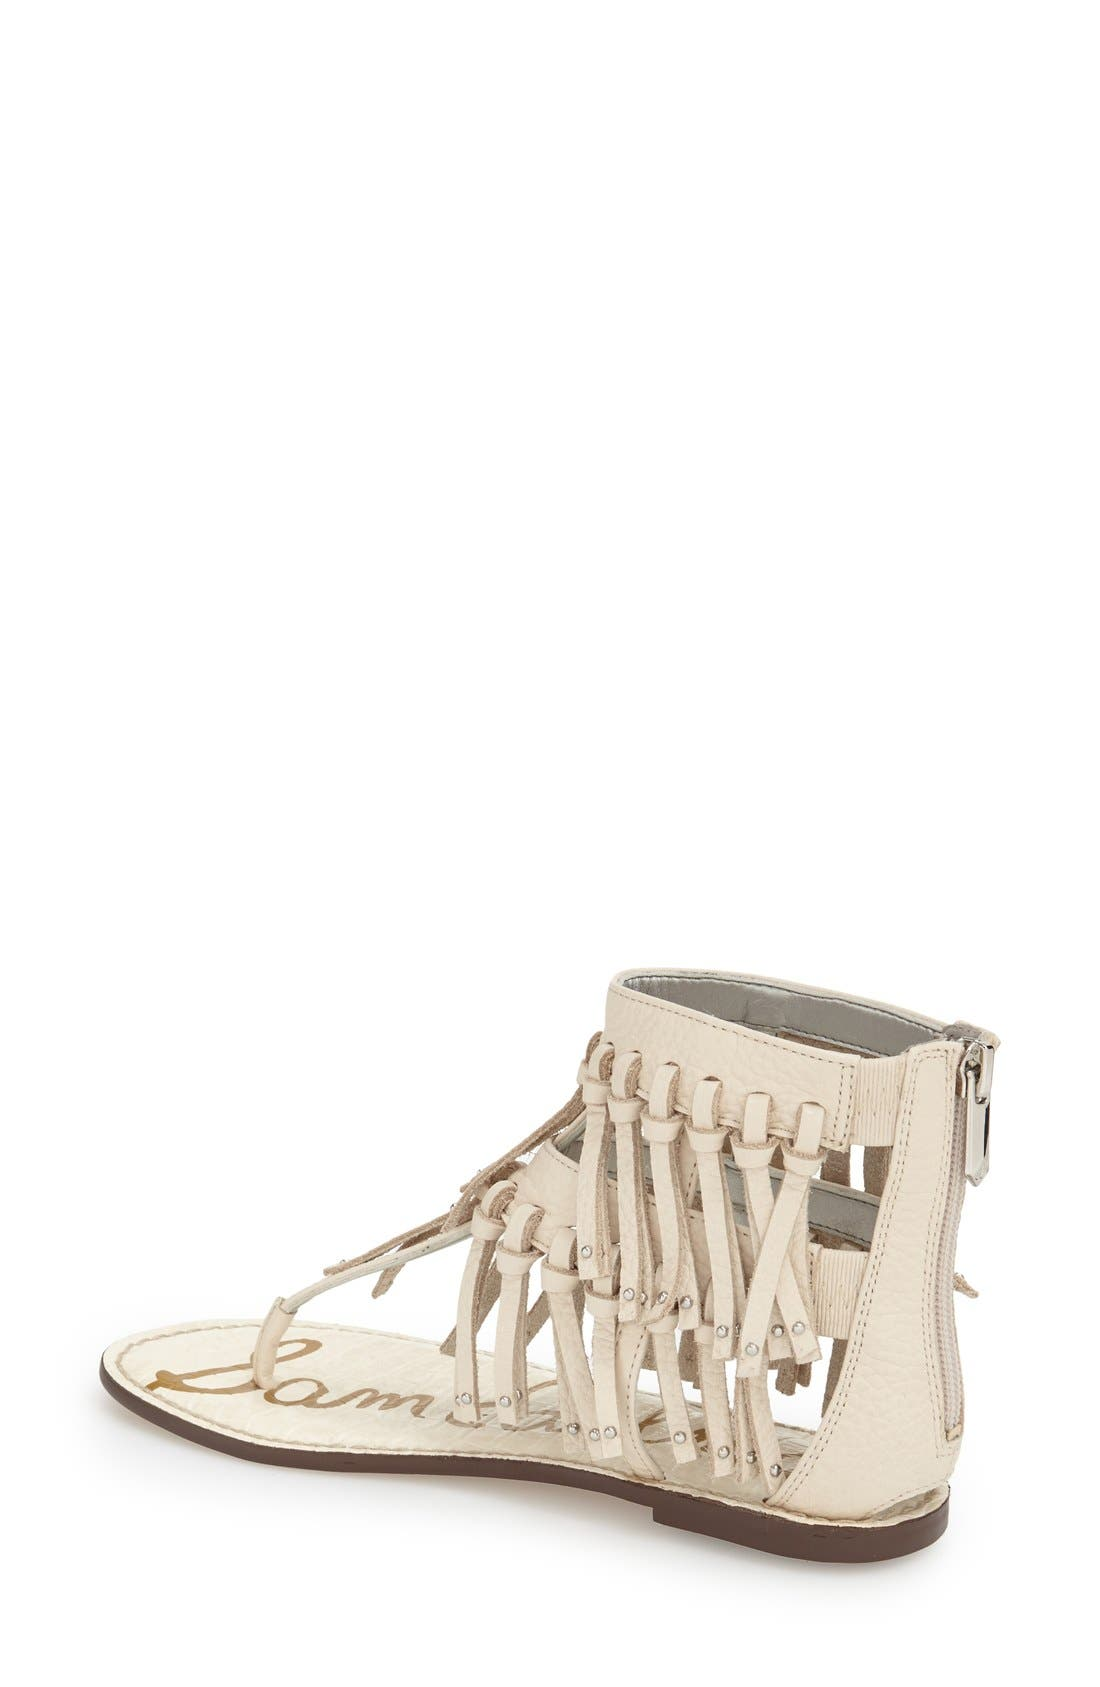 'Griffen' Fringe Sandal,                             Alternate thumbnail 2, color,                             Modern Ivory Leather